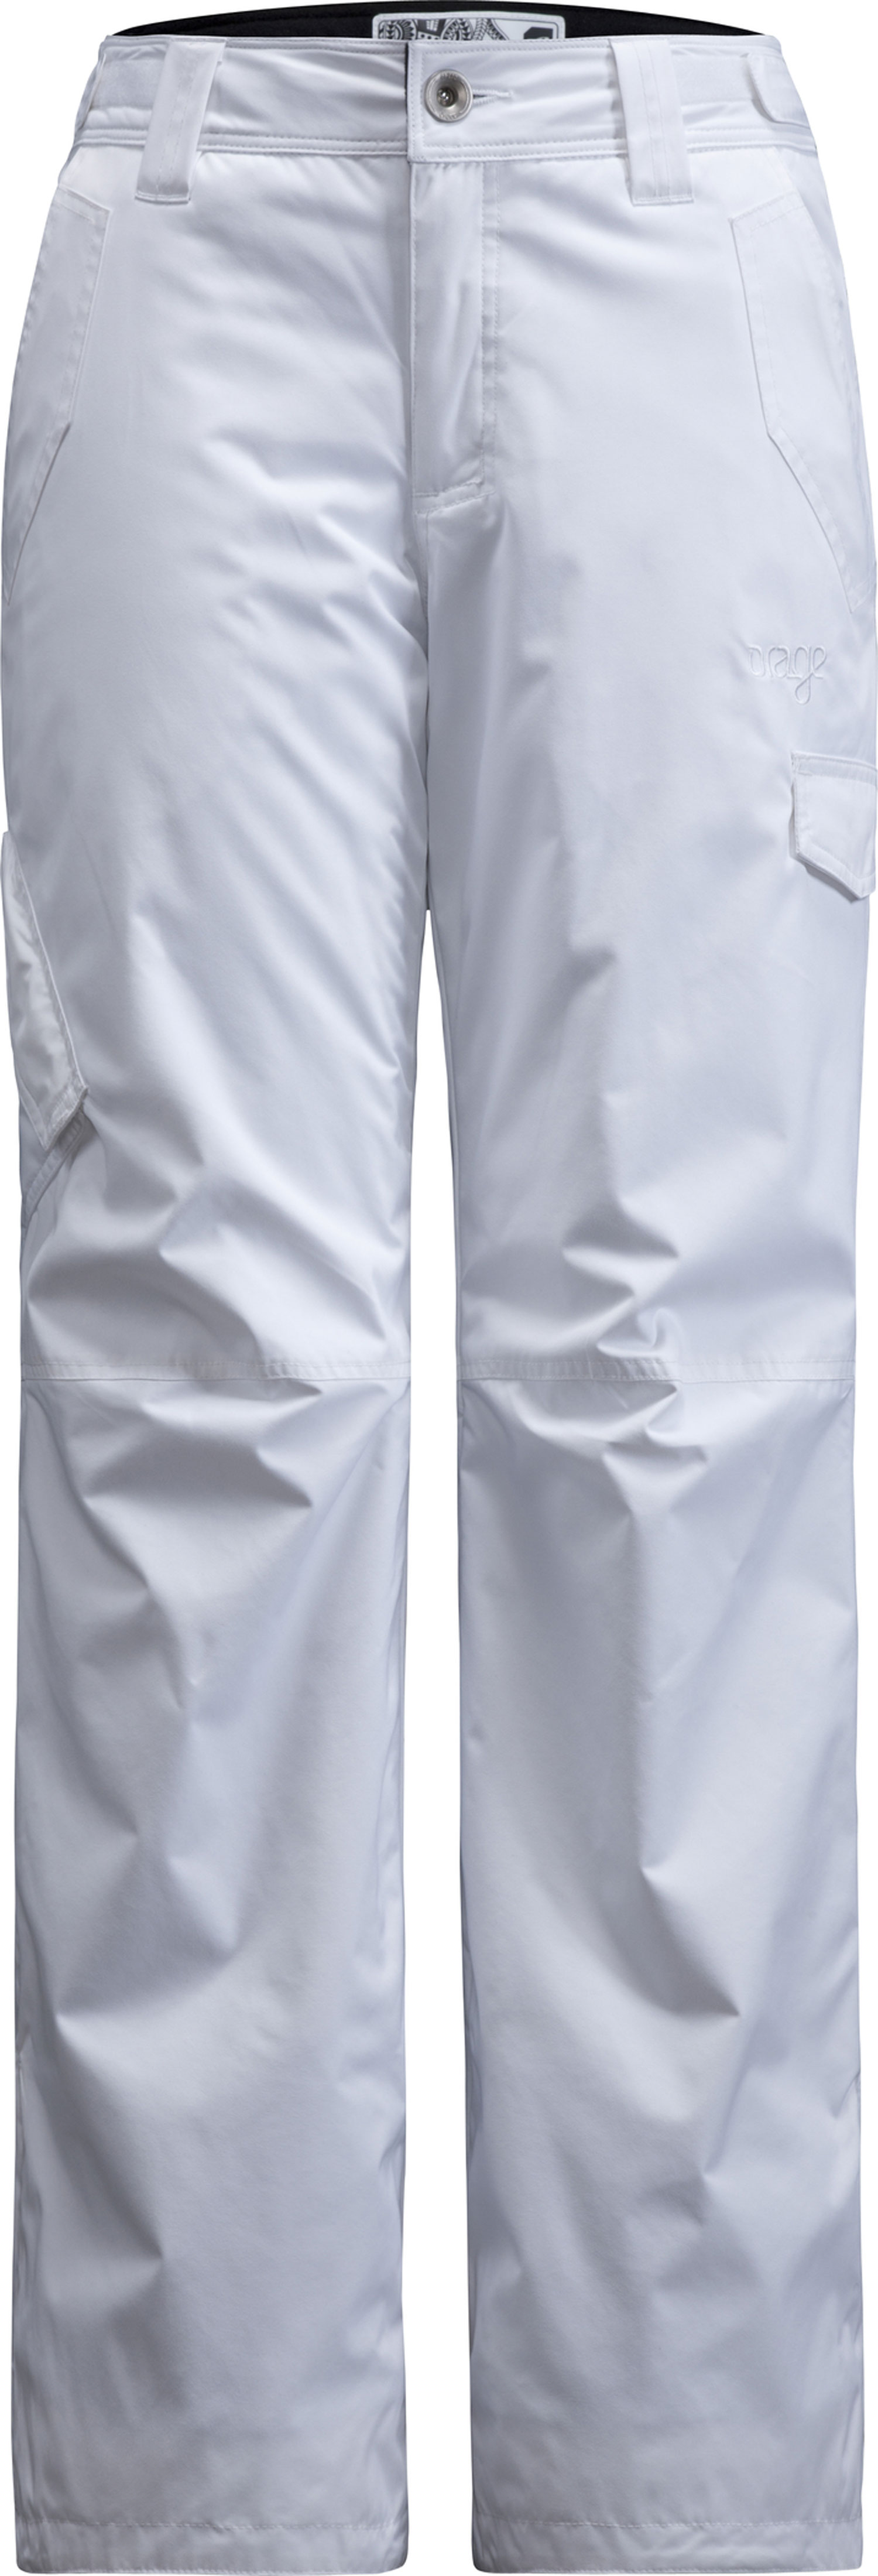 Ski Key Features of the Orage Bell Ski Pants: Prime 10: Nylon twill 2 ply 100% Nylon, ECO DWR 80/10, 160g/m2 Strategically seam sealed Adjustable waist band Lower leg reinforcement Snow gaiters with elastic grip - $111.95